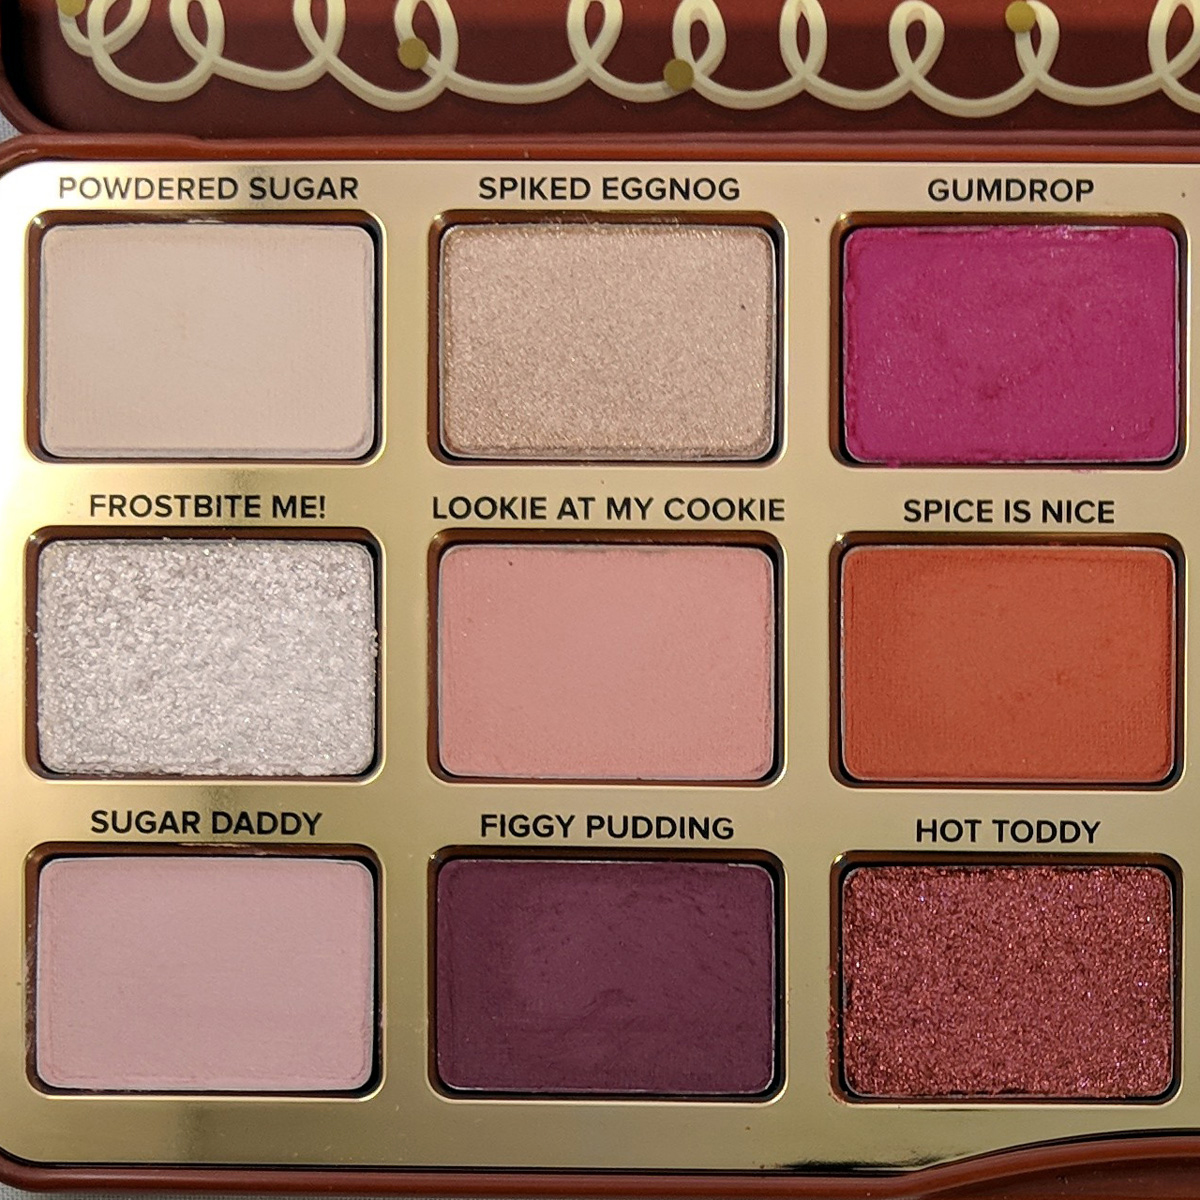 too-faced-gingerbread-spice-eyeshadow-palette-review-zoom-left